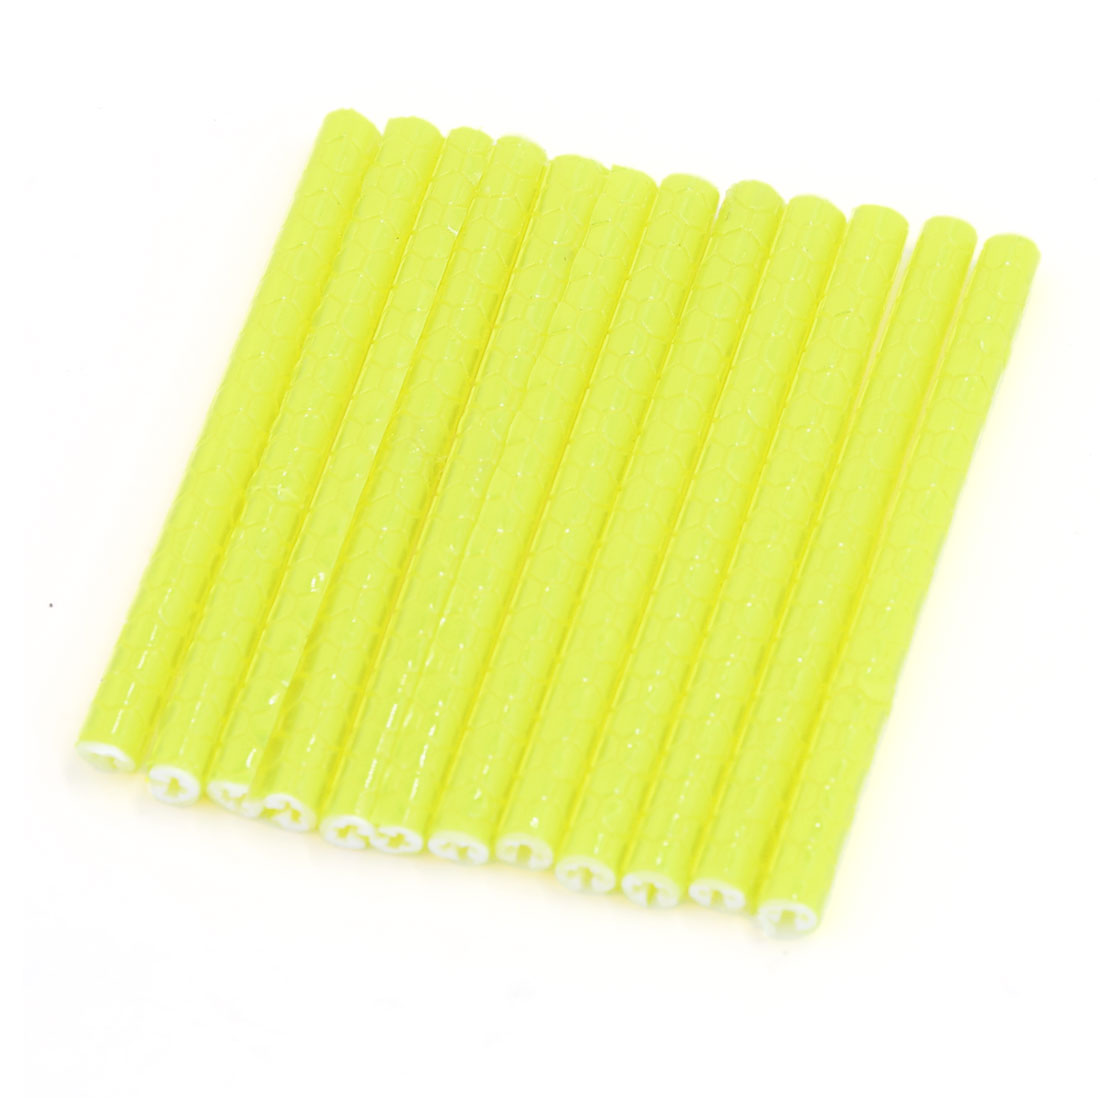 12 Pcs Yellow Bicycle Bike Wheel Rim Spoke Reflective Reflector Tube Strip 75mm